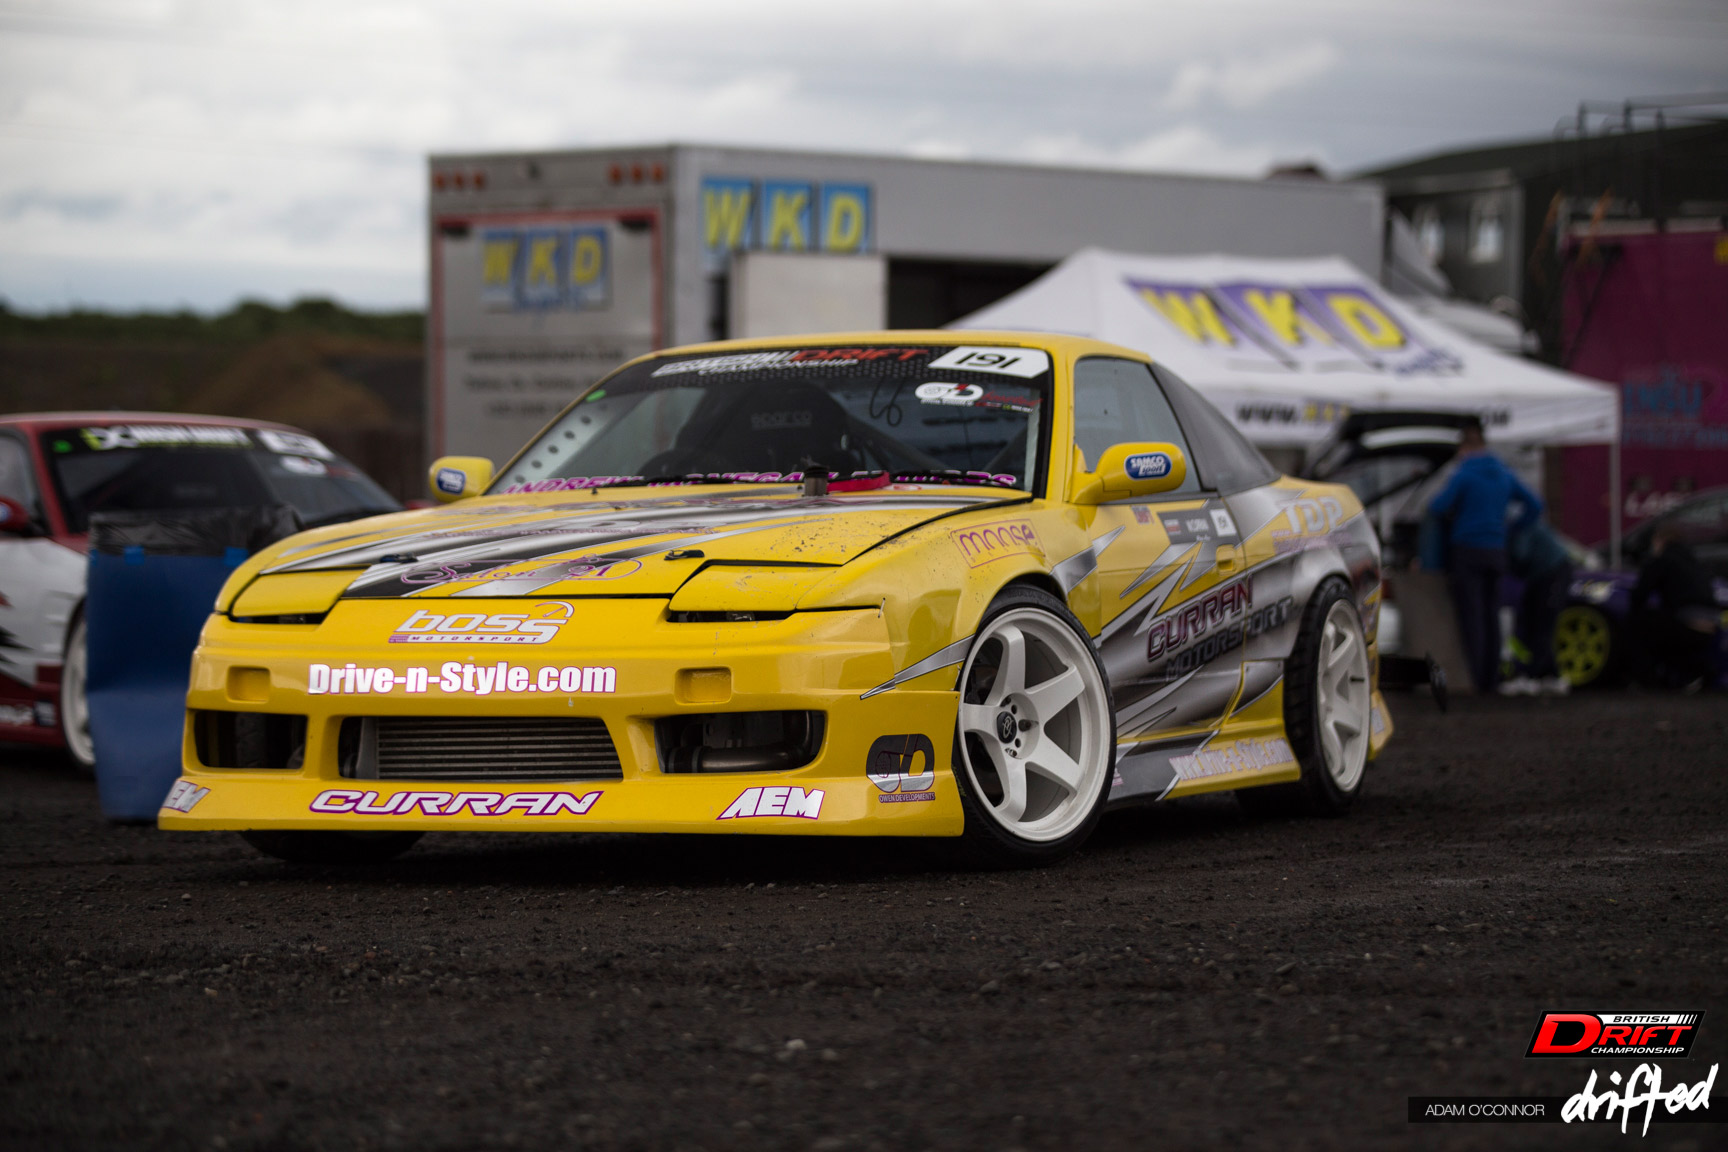 The Flatout Factory Drift Car Drifted Com